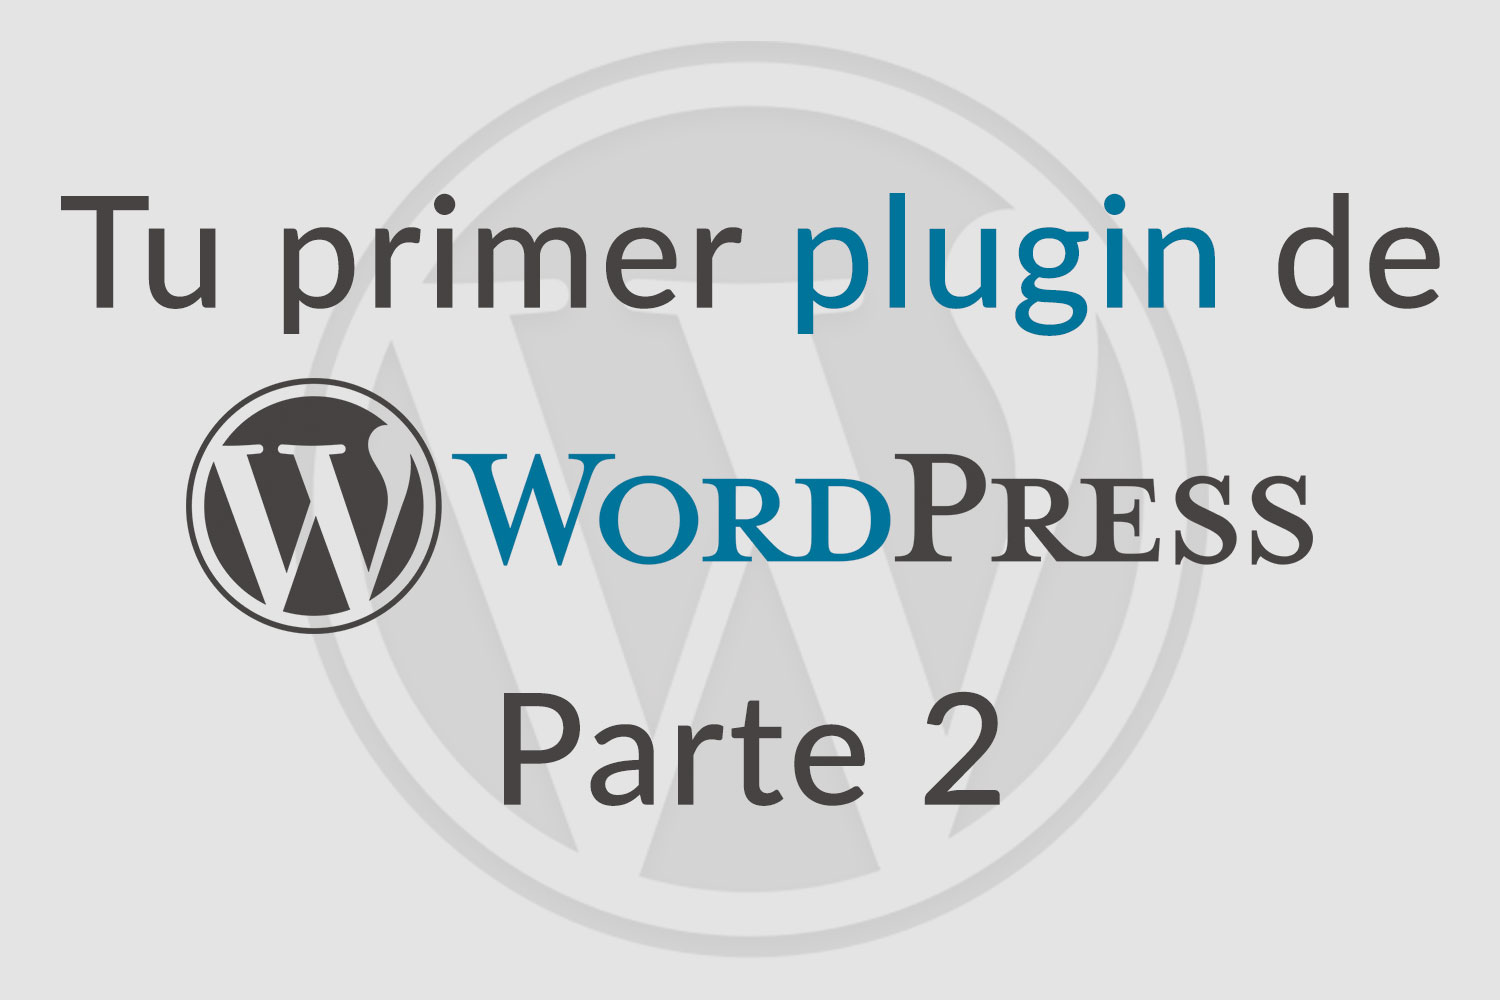 Tu primer plugin de WordPress. Parte 2